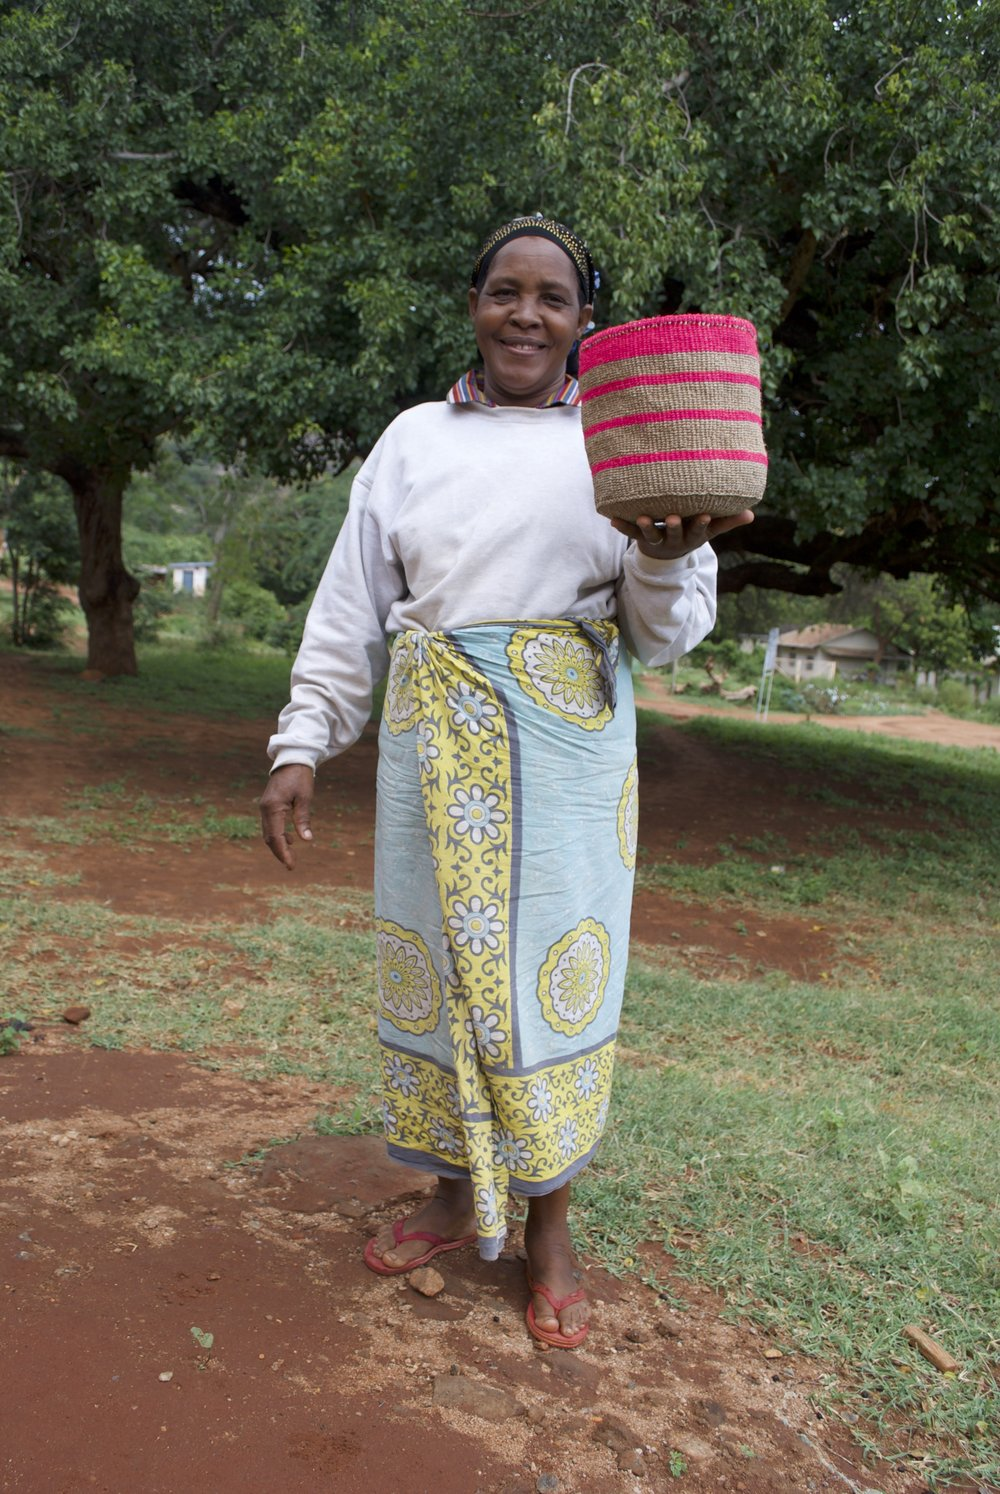 """""""One of the problems we as basket weavers face is a lack of market. We weave many baskets but we lack customers to sell them to.If this is looked into it will go a long way in improving our standards of living."""" -  Grace, Amani Basket Weavers"""